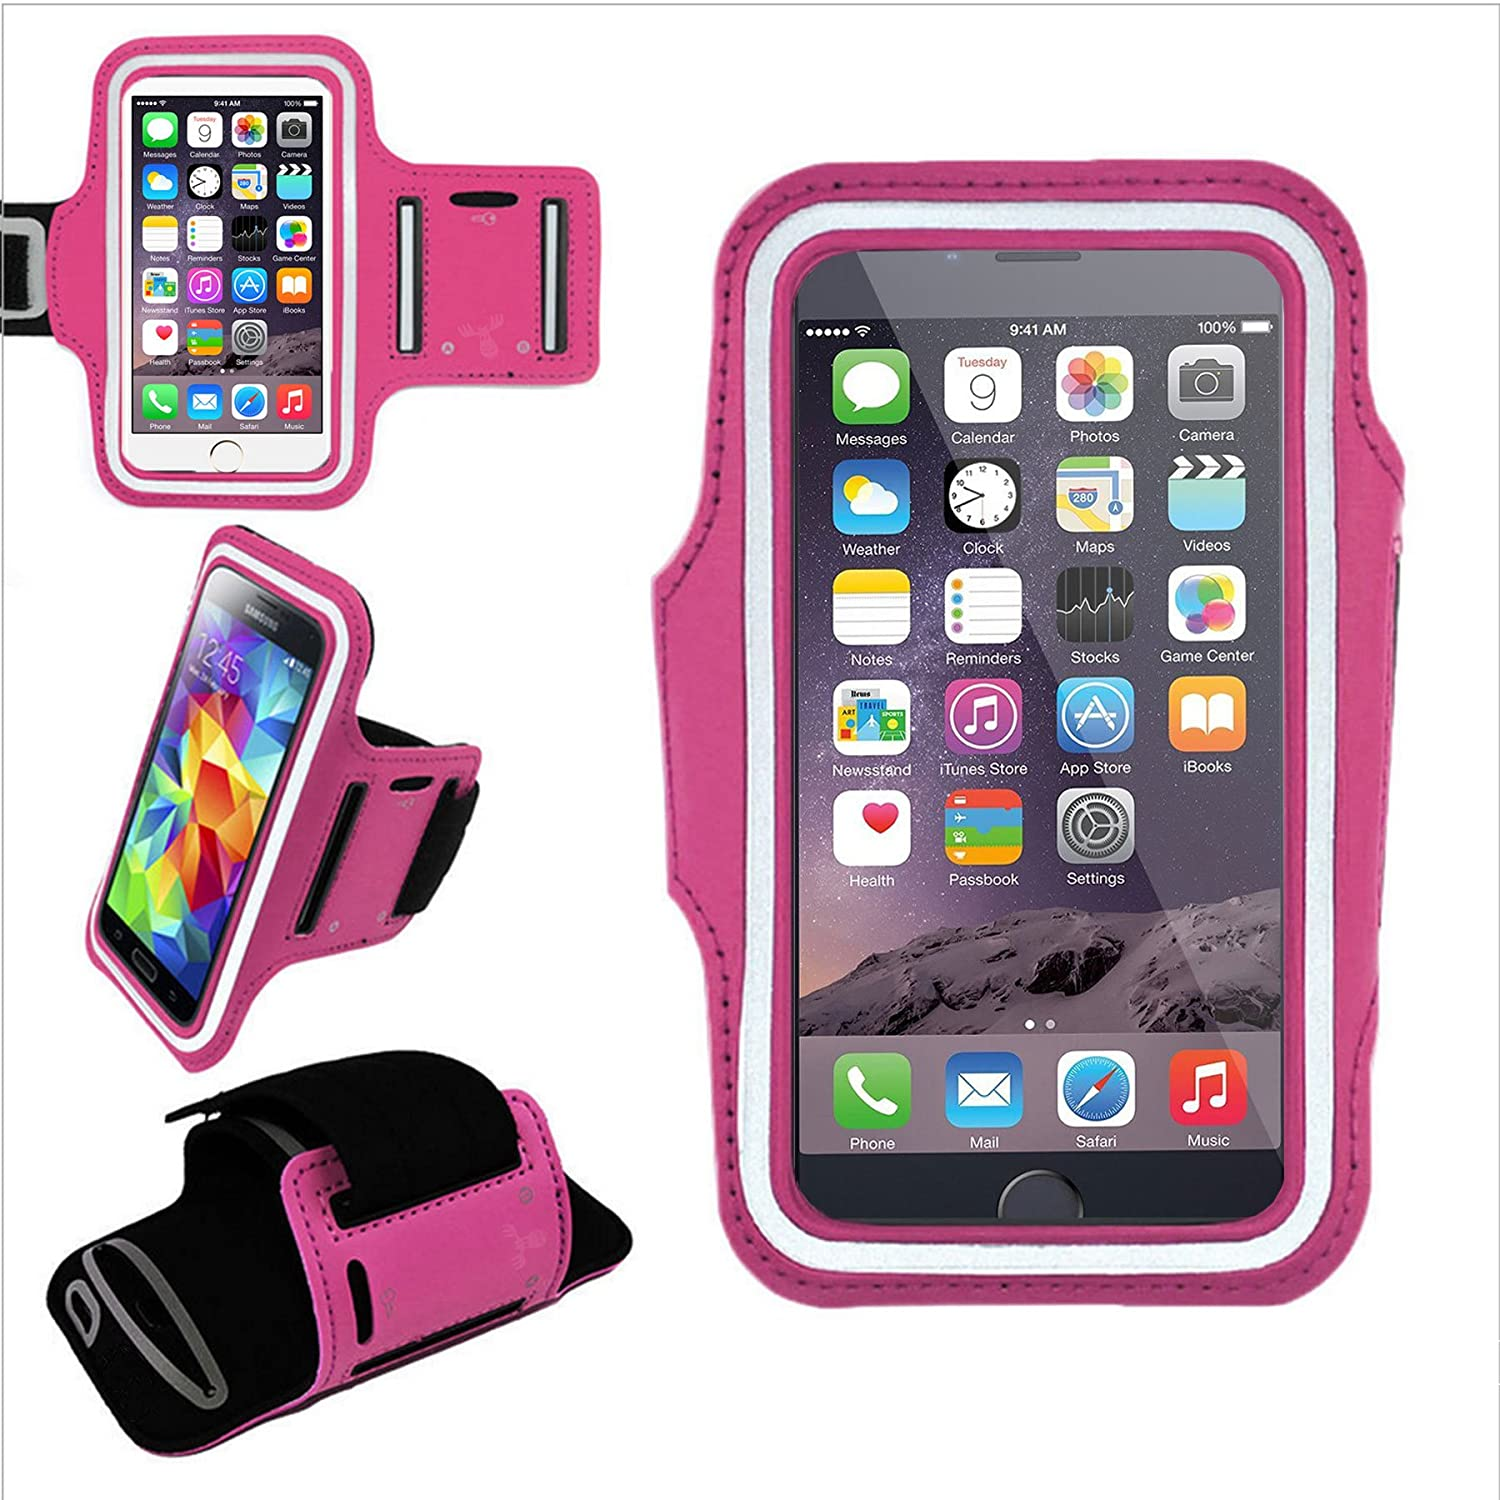 new style e4343 6a832 EpicGadget(TM) Best Running Armband for Apple iPhone 6 Plus 6 5S 5C 5 4S 4,  Samsung Galaxy S6 S6 Edge S5 S4 S3, Galaxy Note 4 3 2 1, HTC M9 M8 M7, LG  ...